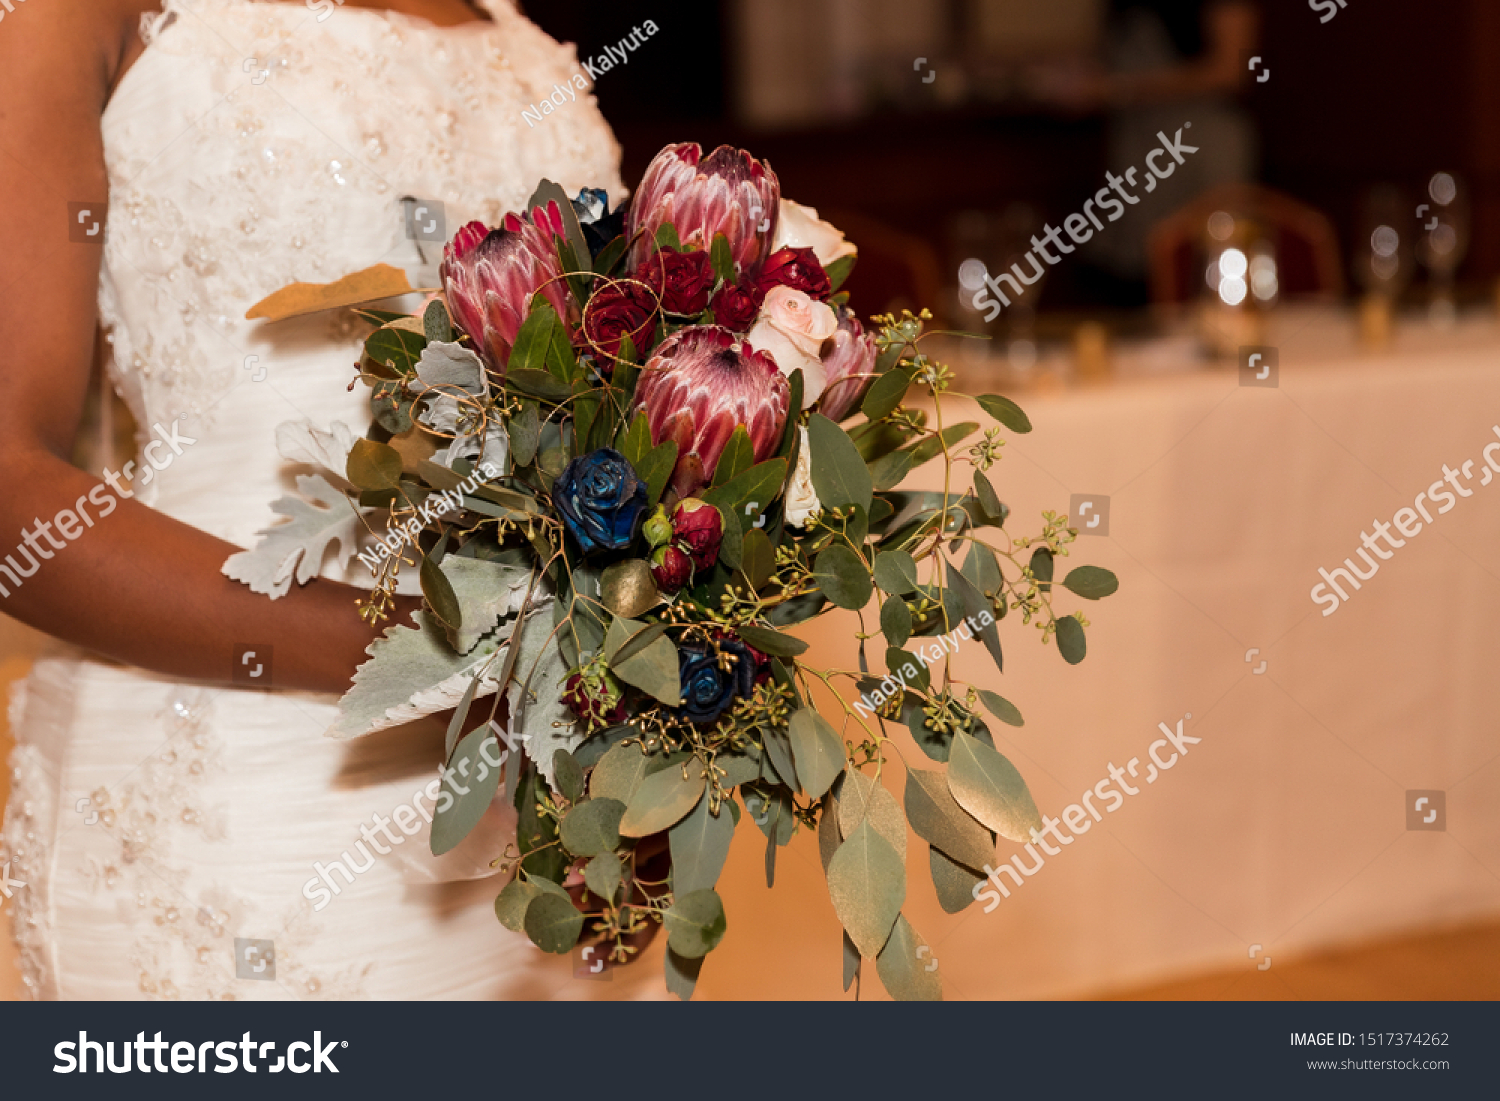 Bride Holding Wedding Bouquet Red Flowers Stock Photo Edit Now 1517374262